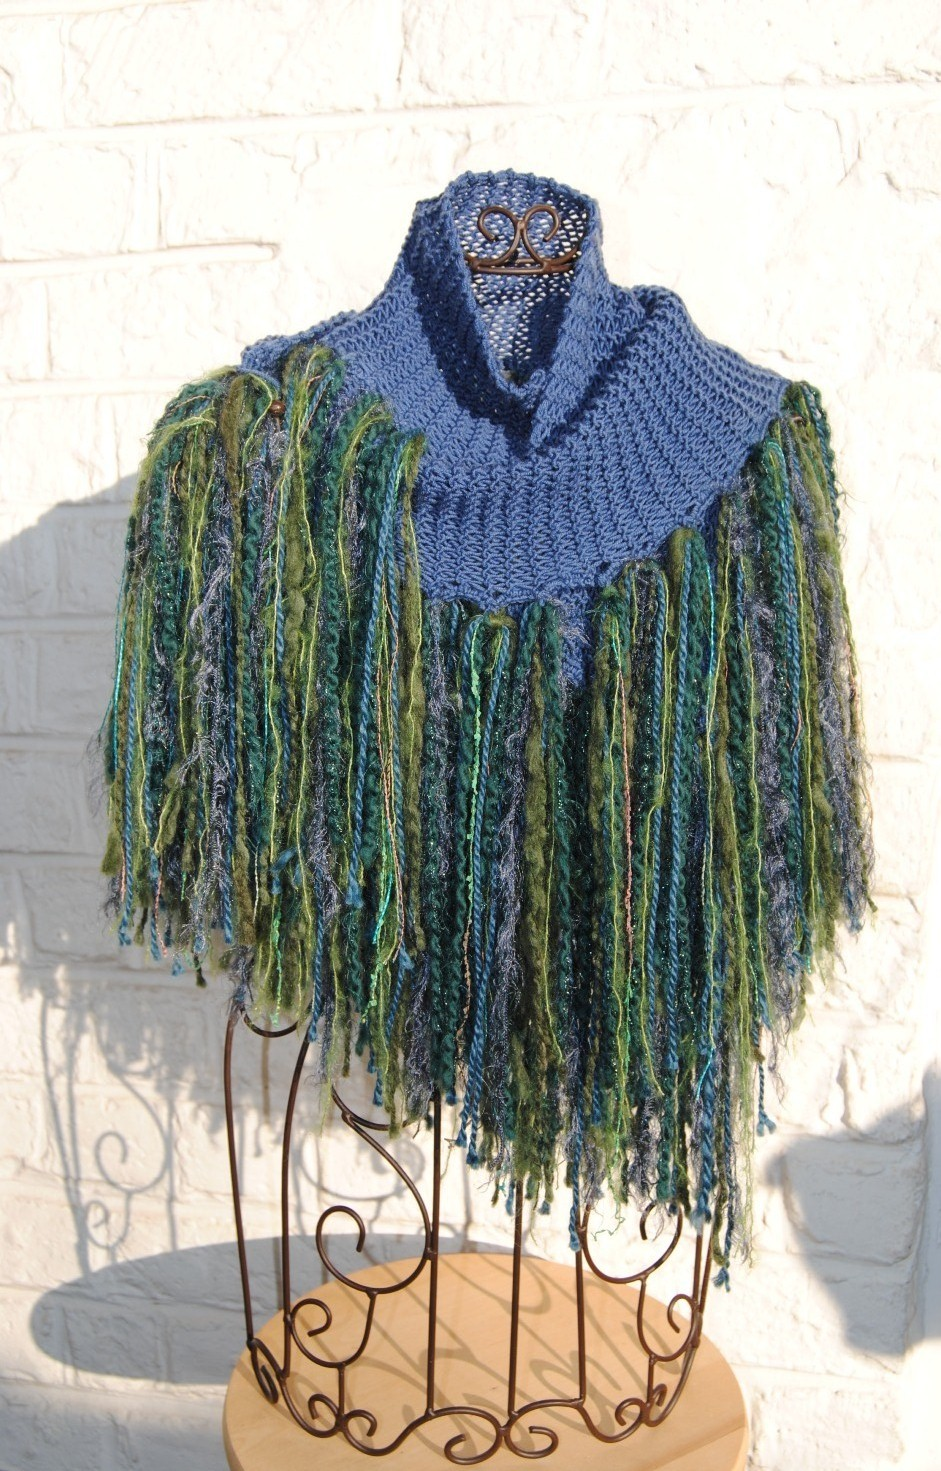 FUN FUR CROCHET SCARFS - Crochet  Learn How to Crochet